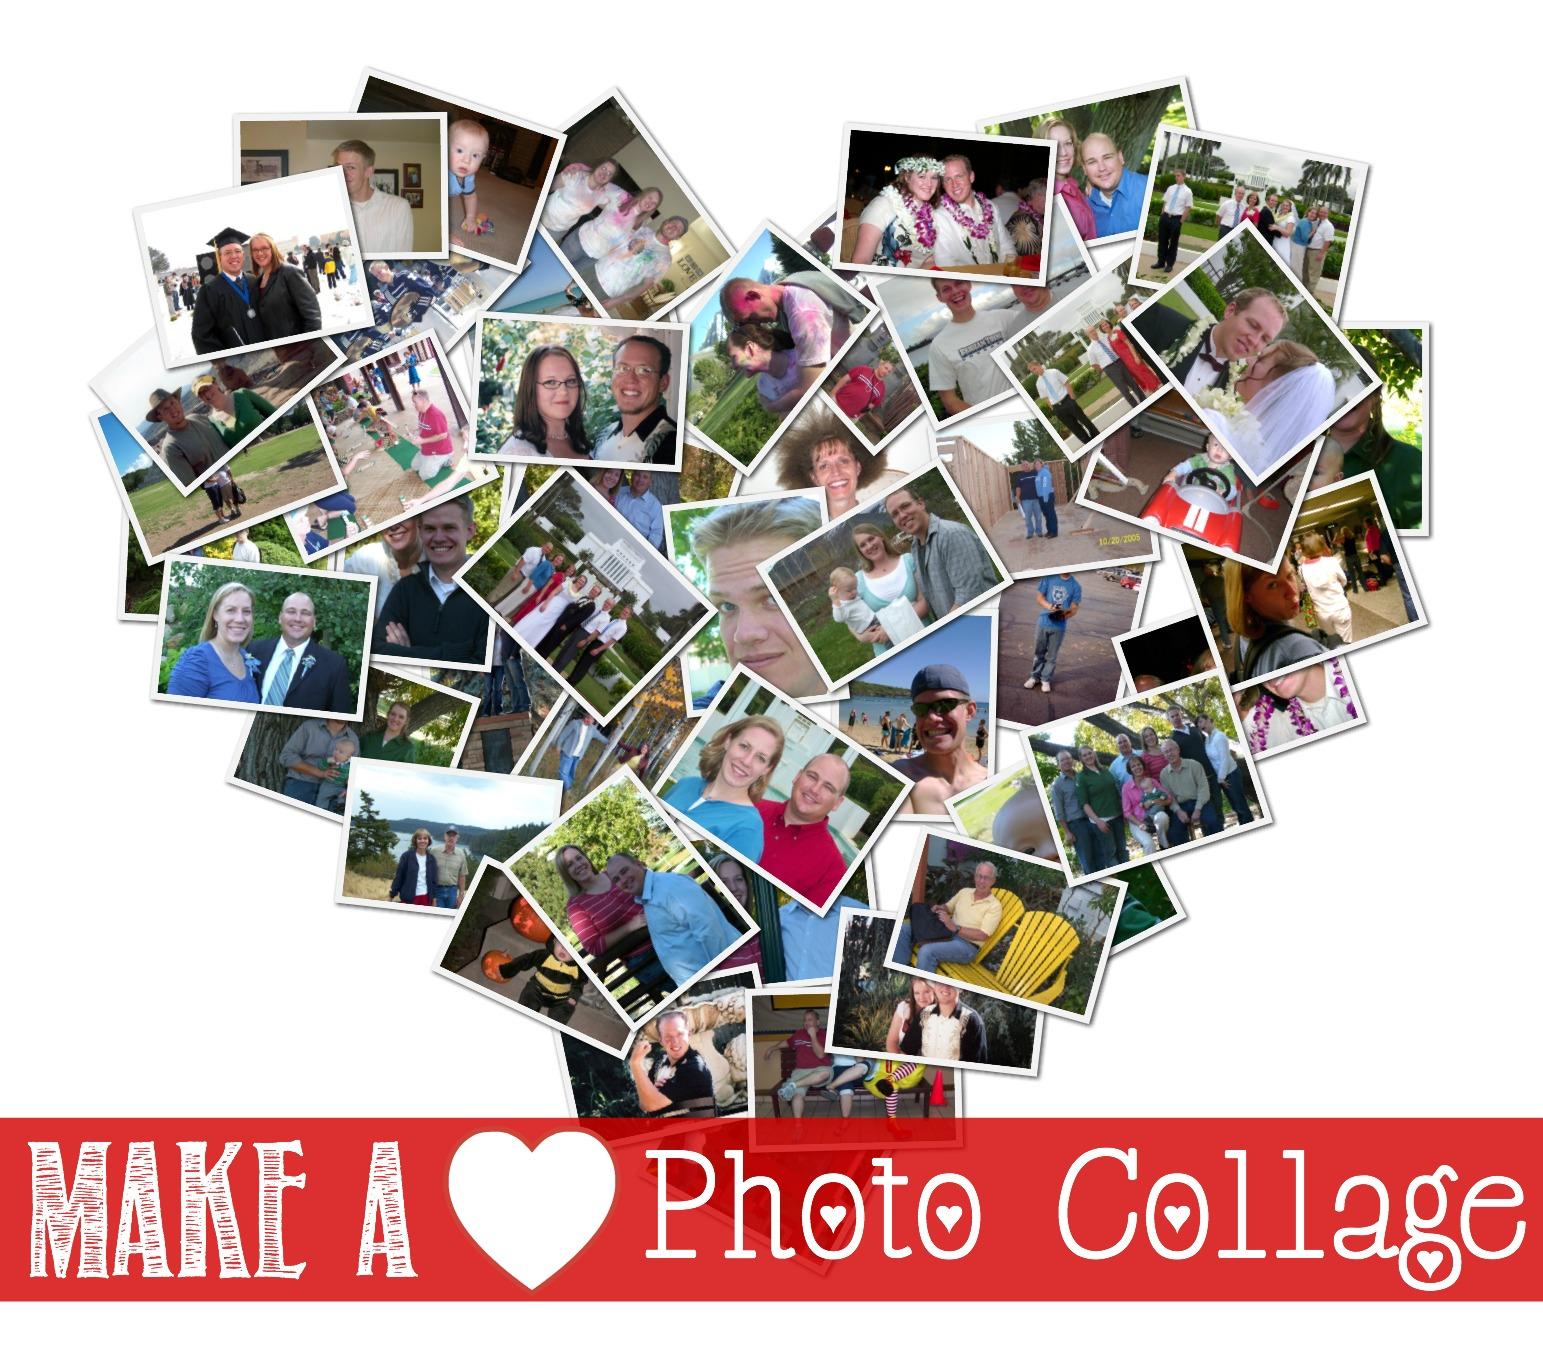 Make a heart-shaped photo colloage with this free software. GrandmaIdeas.com